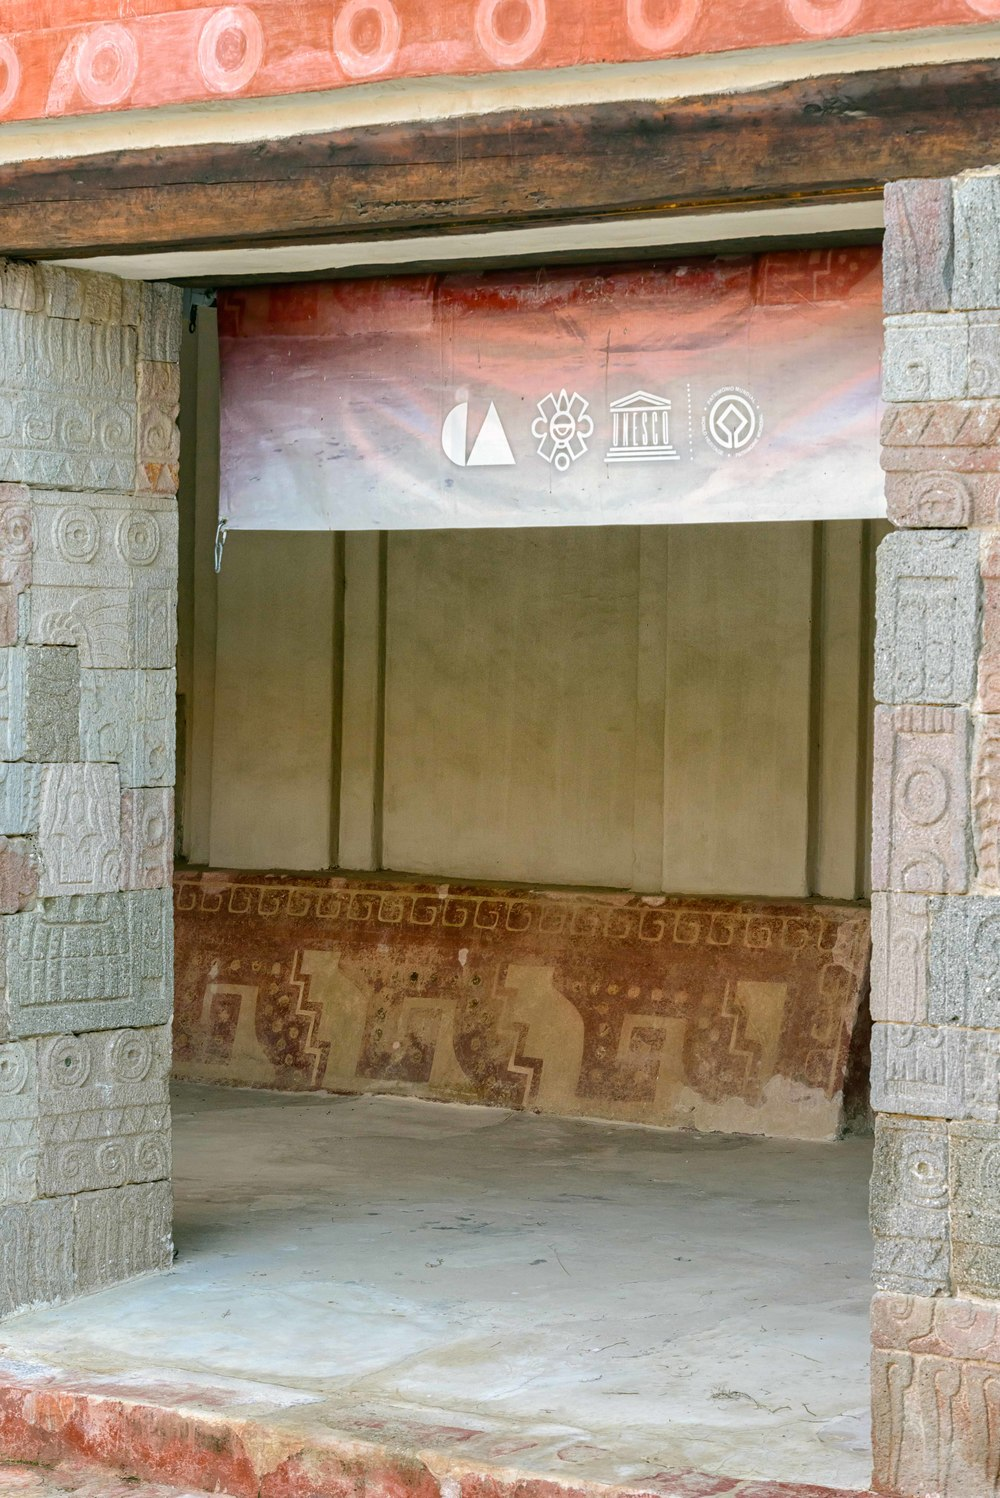 """Patio de los Pilares"", Palace of Quetzalpapalotl at Teotihuacan.  The rooms surrounding the courtyard have a porch, where you can see the review of the decoration, mainly at the bottom of the walls. The painted designs are of abstract geometric shapes, like a square stepped frets and  scrolls, and are framed by  a line of spiral-shaped ornaments, that are always in the same direction. Such designs are unique in the city."